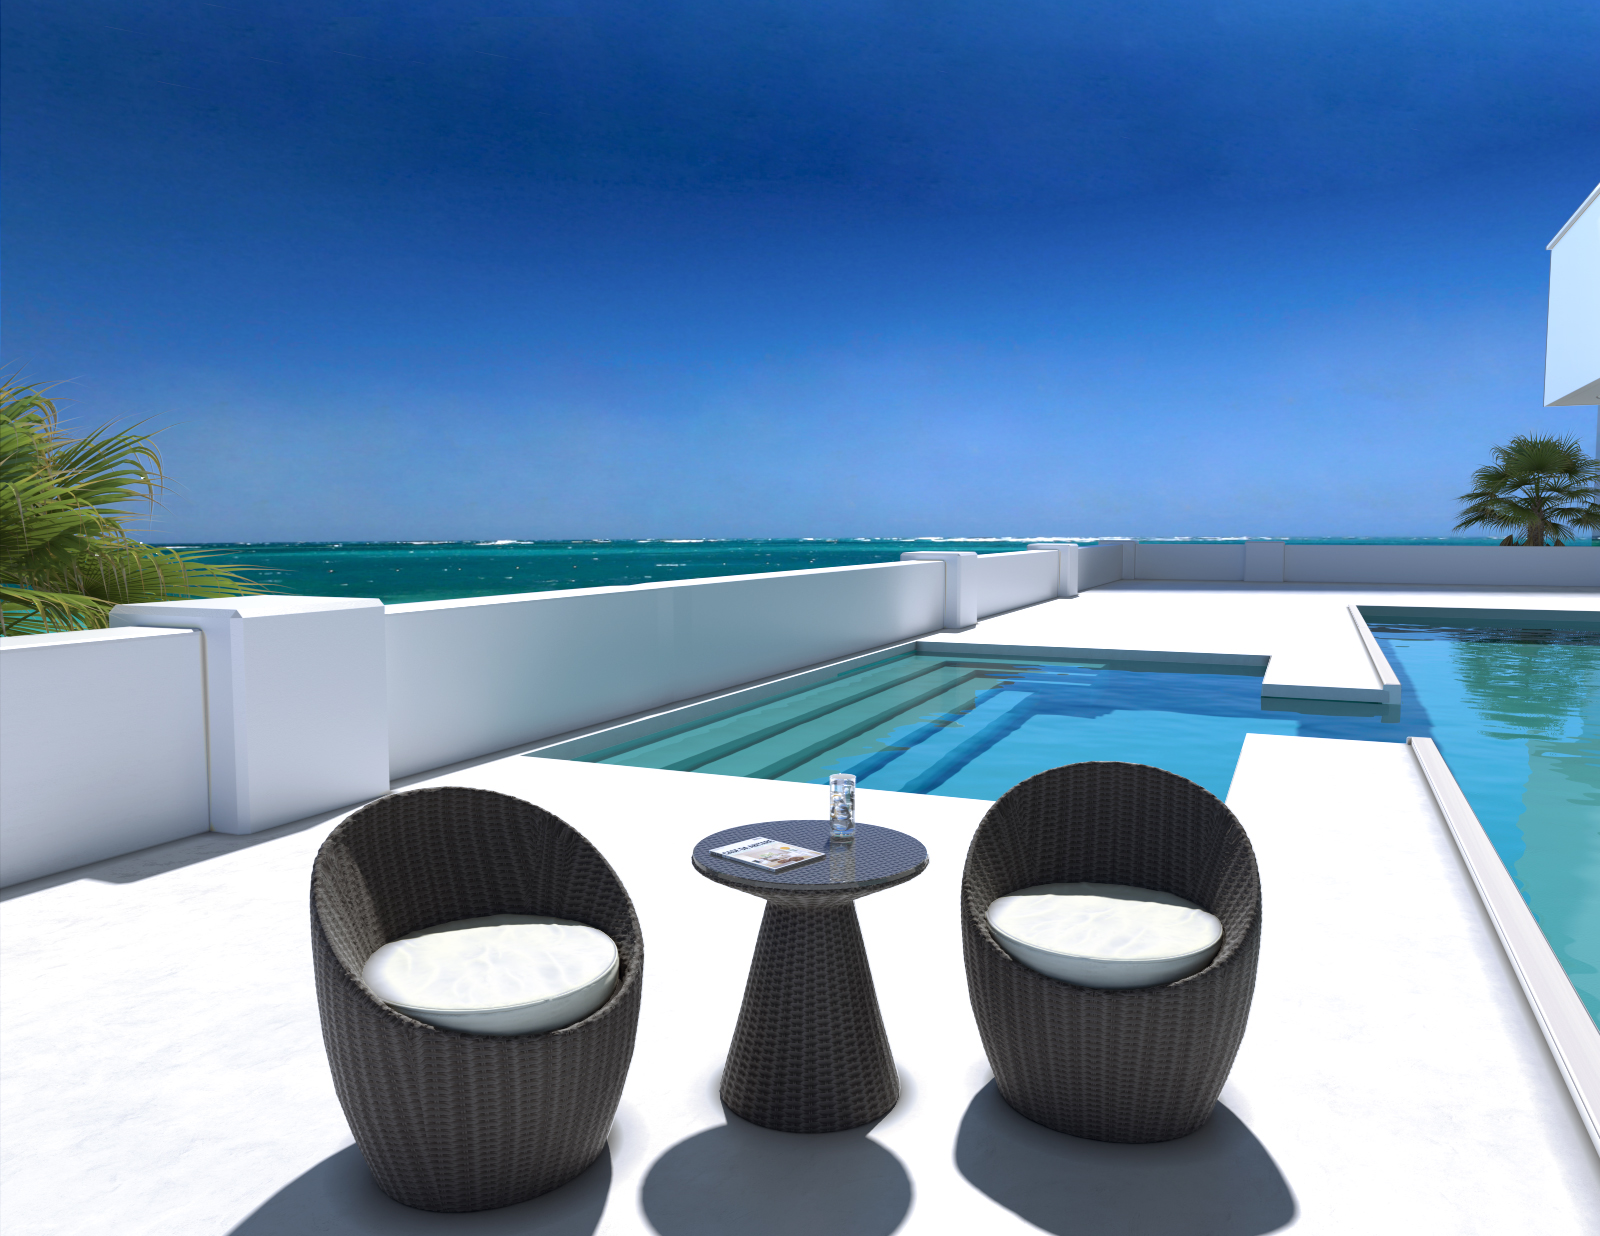 Ivy Outdoor Modern Balcony Set